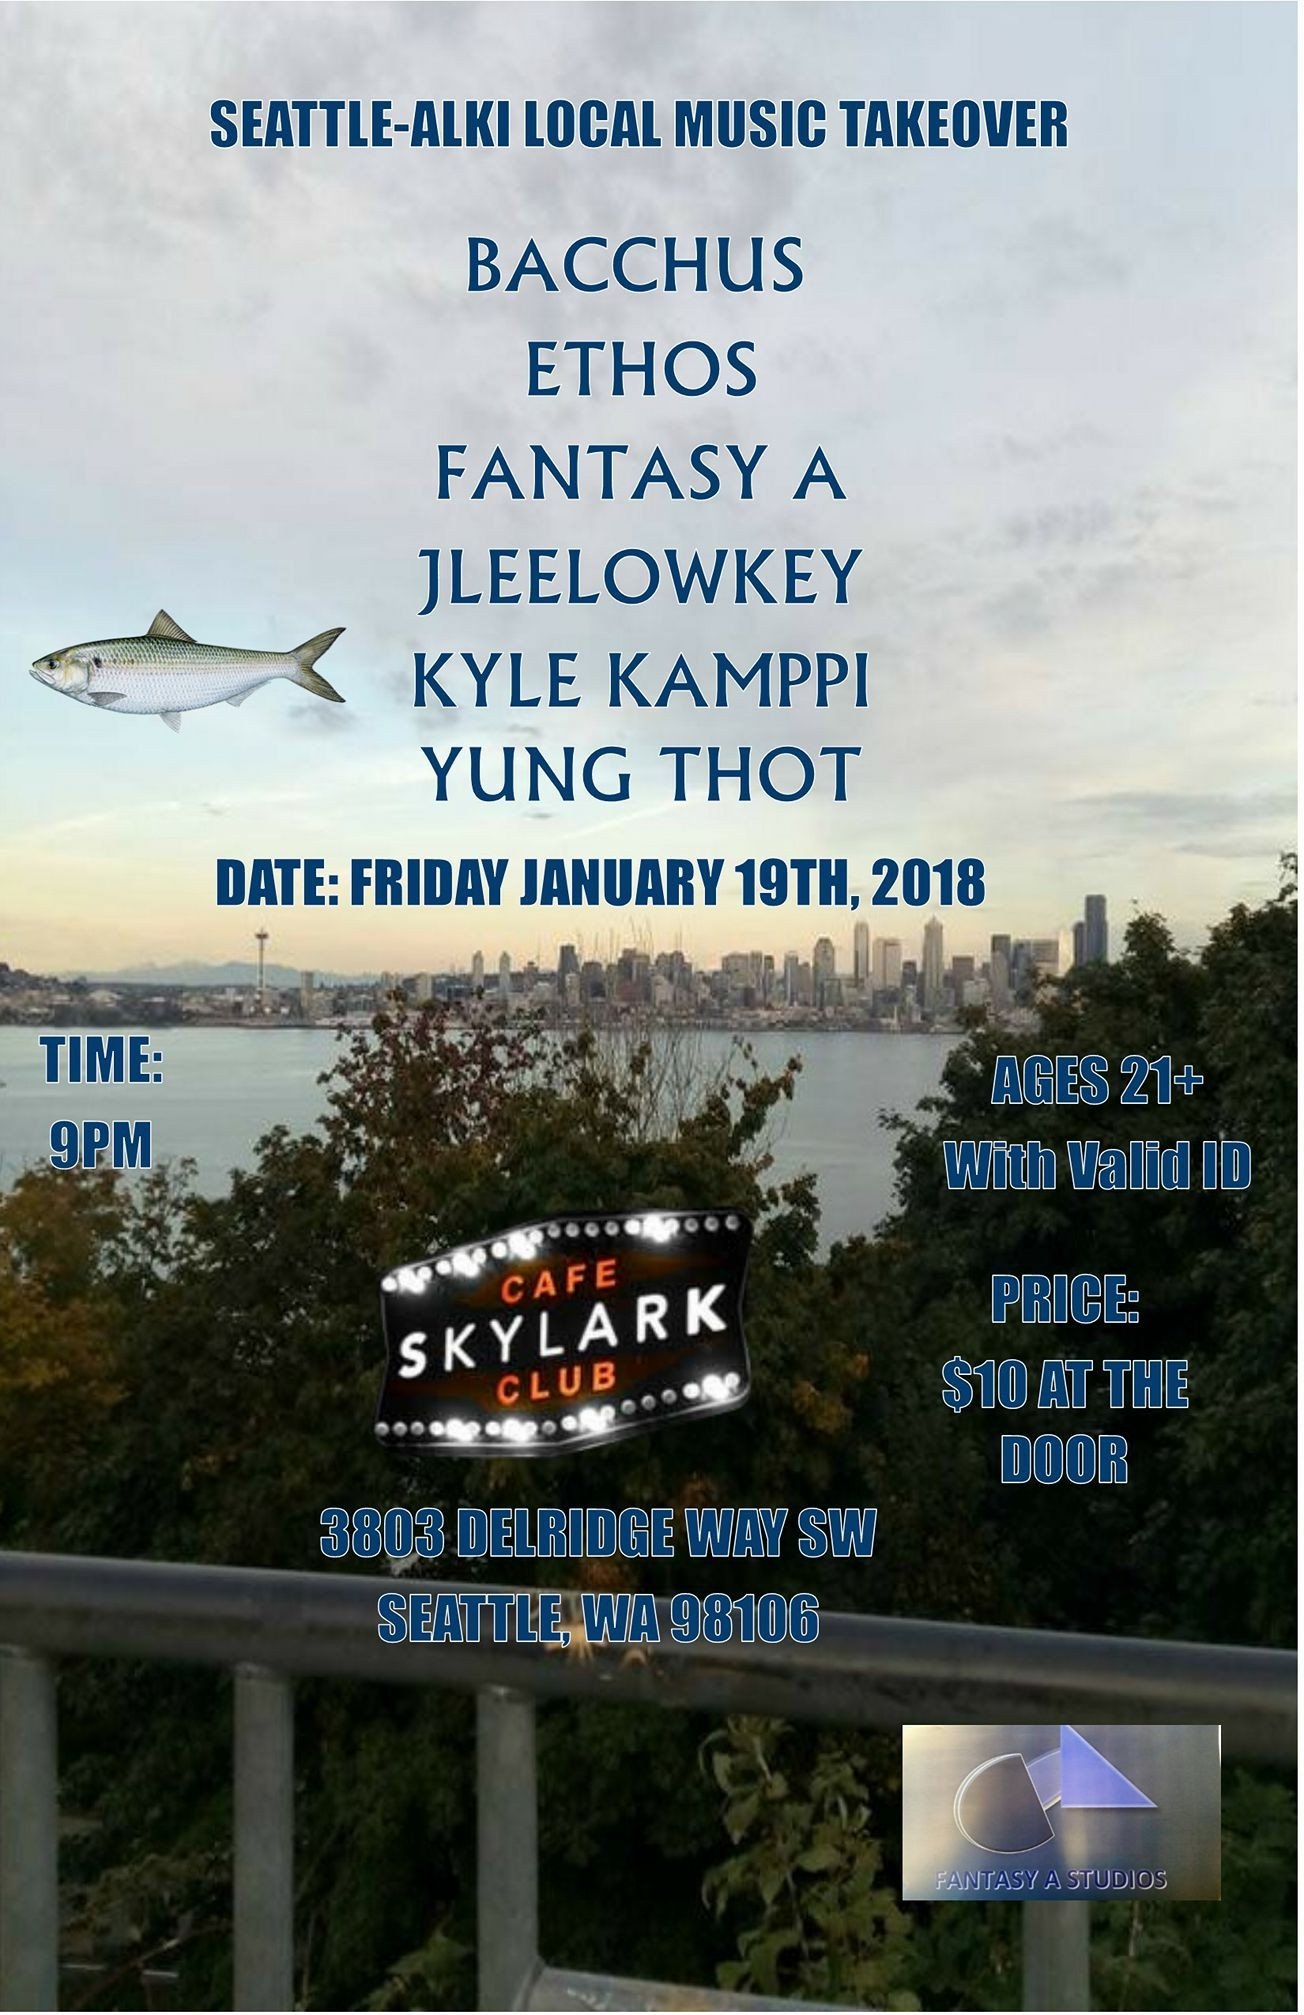 Seattle-Alki Local Music Takeover at Skylark Cafe & Club in Seattle